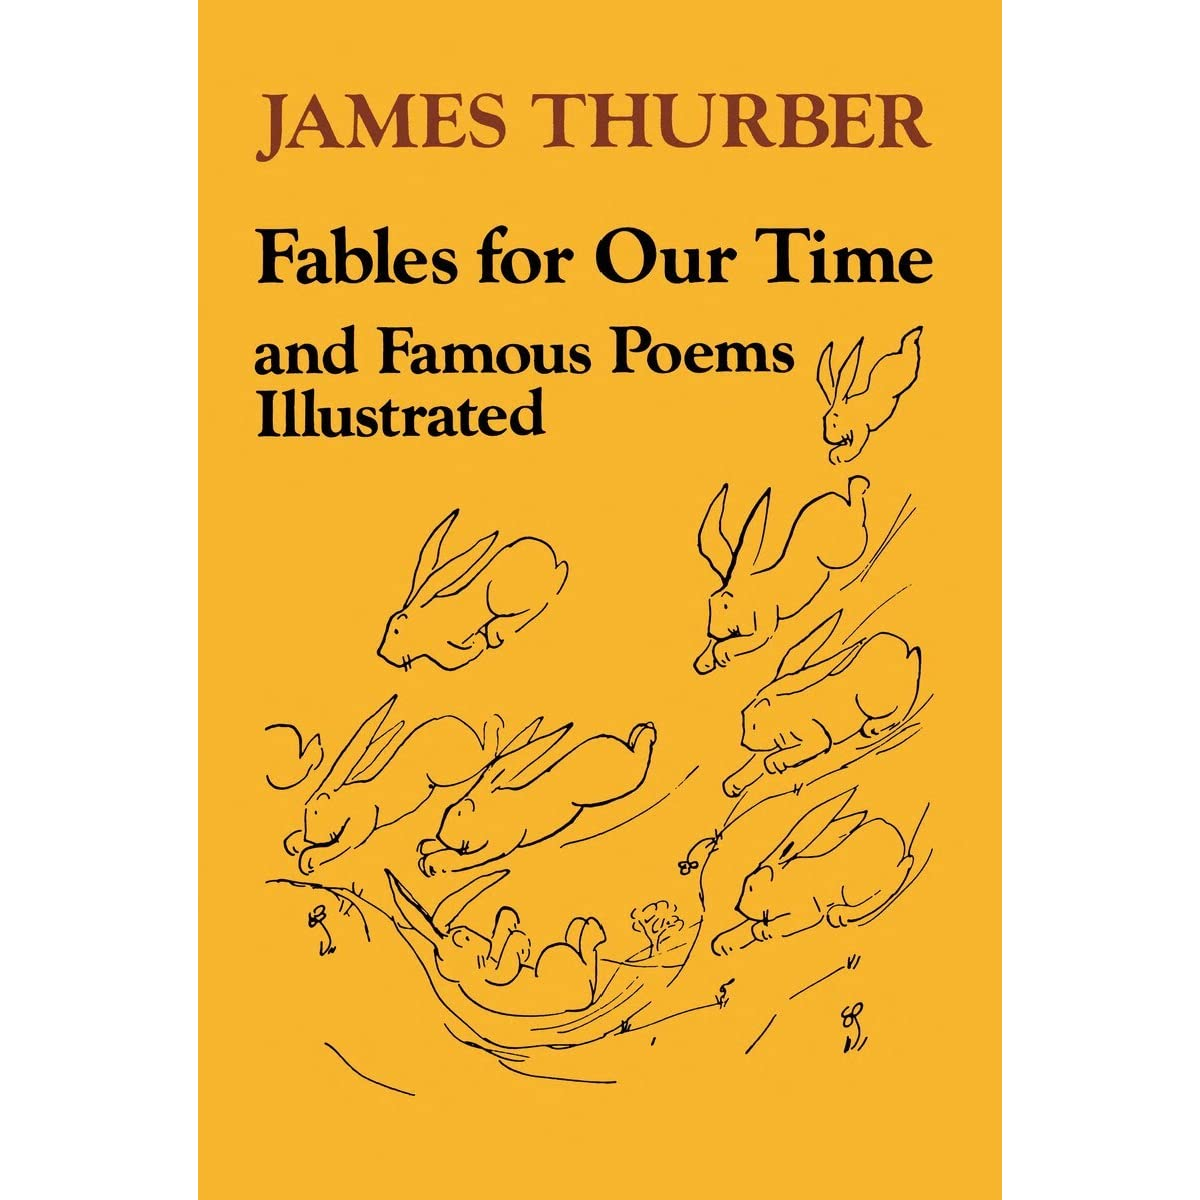 A List Of Fables And Their Morals fables for our time and famous poems illustratedjames